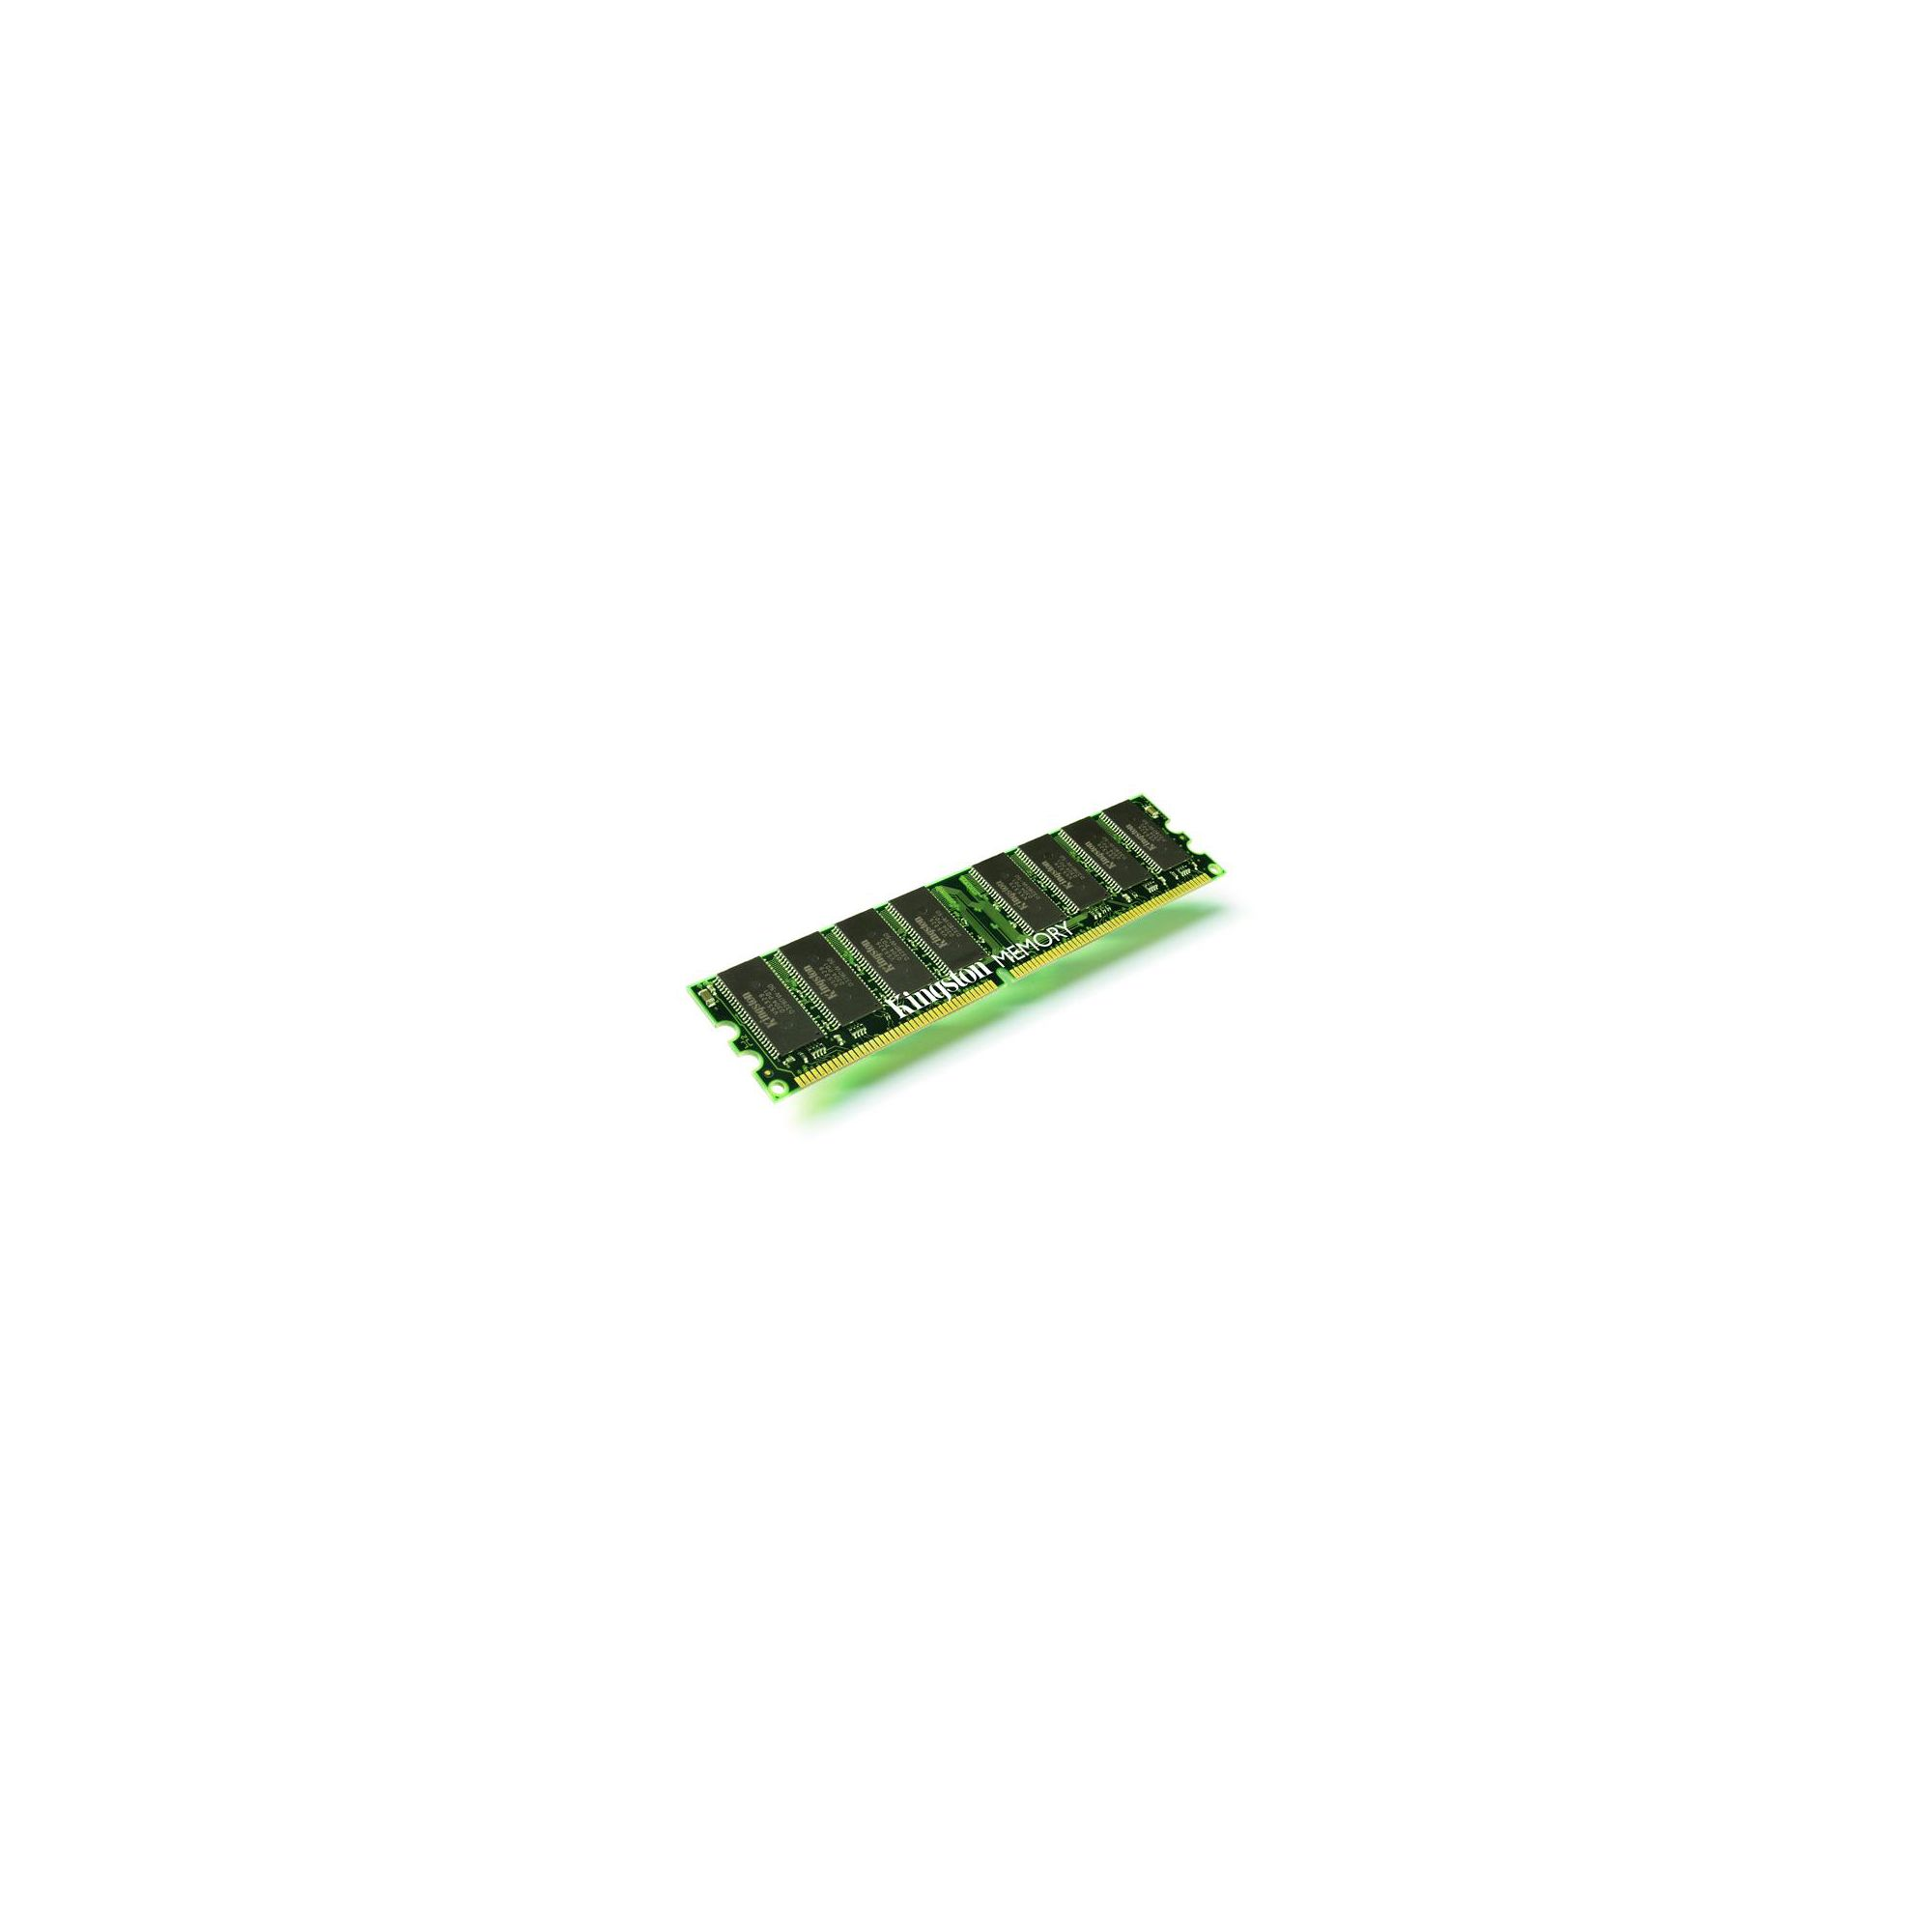 Kingston 8GB (2 x 4GB) 667MHz DDR2 ECC Chipkill DIMM Memory Module at Tesco Direct